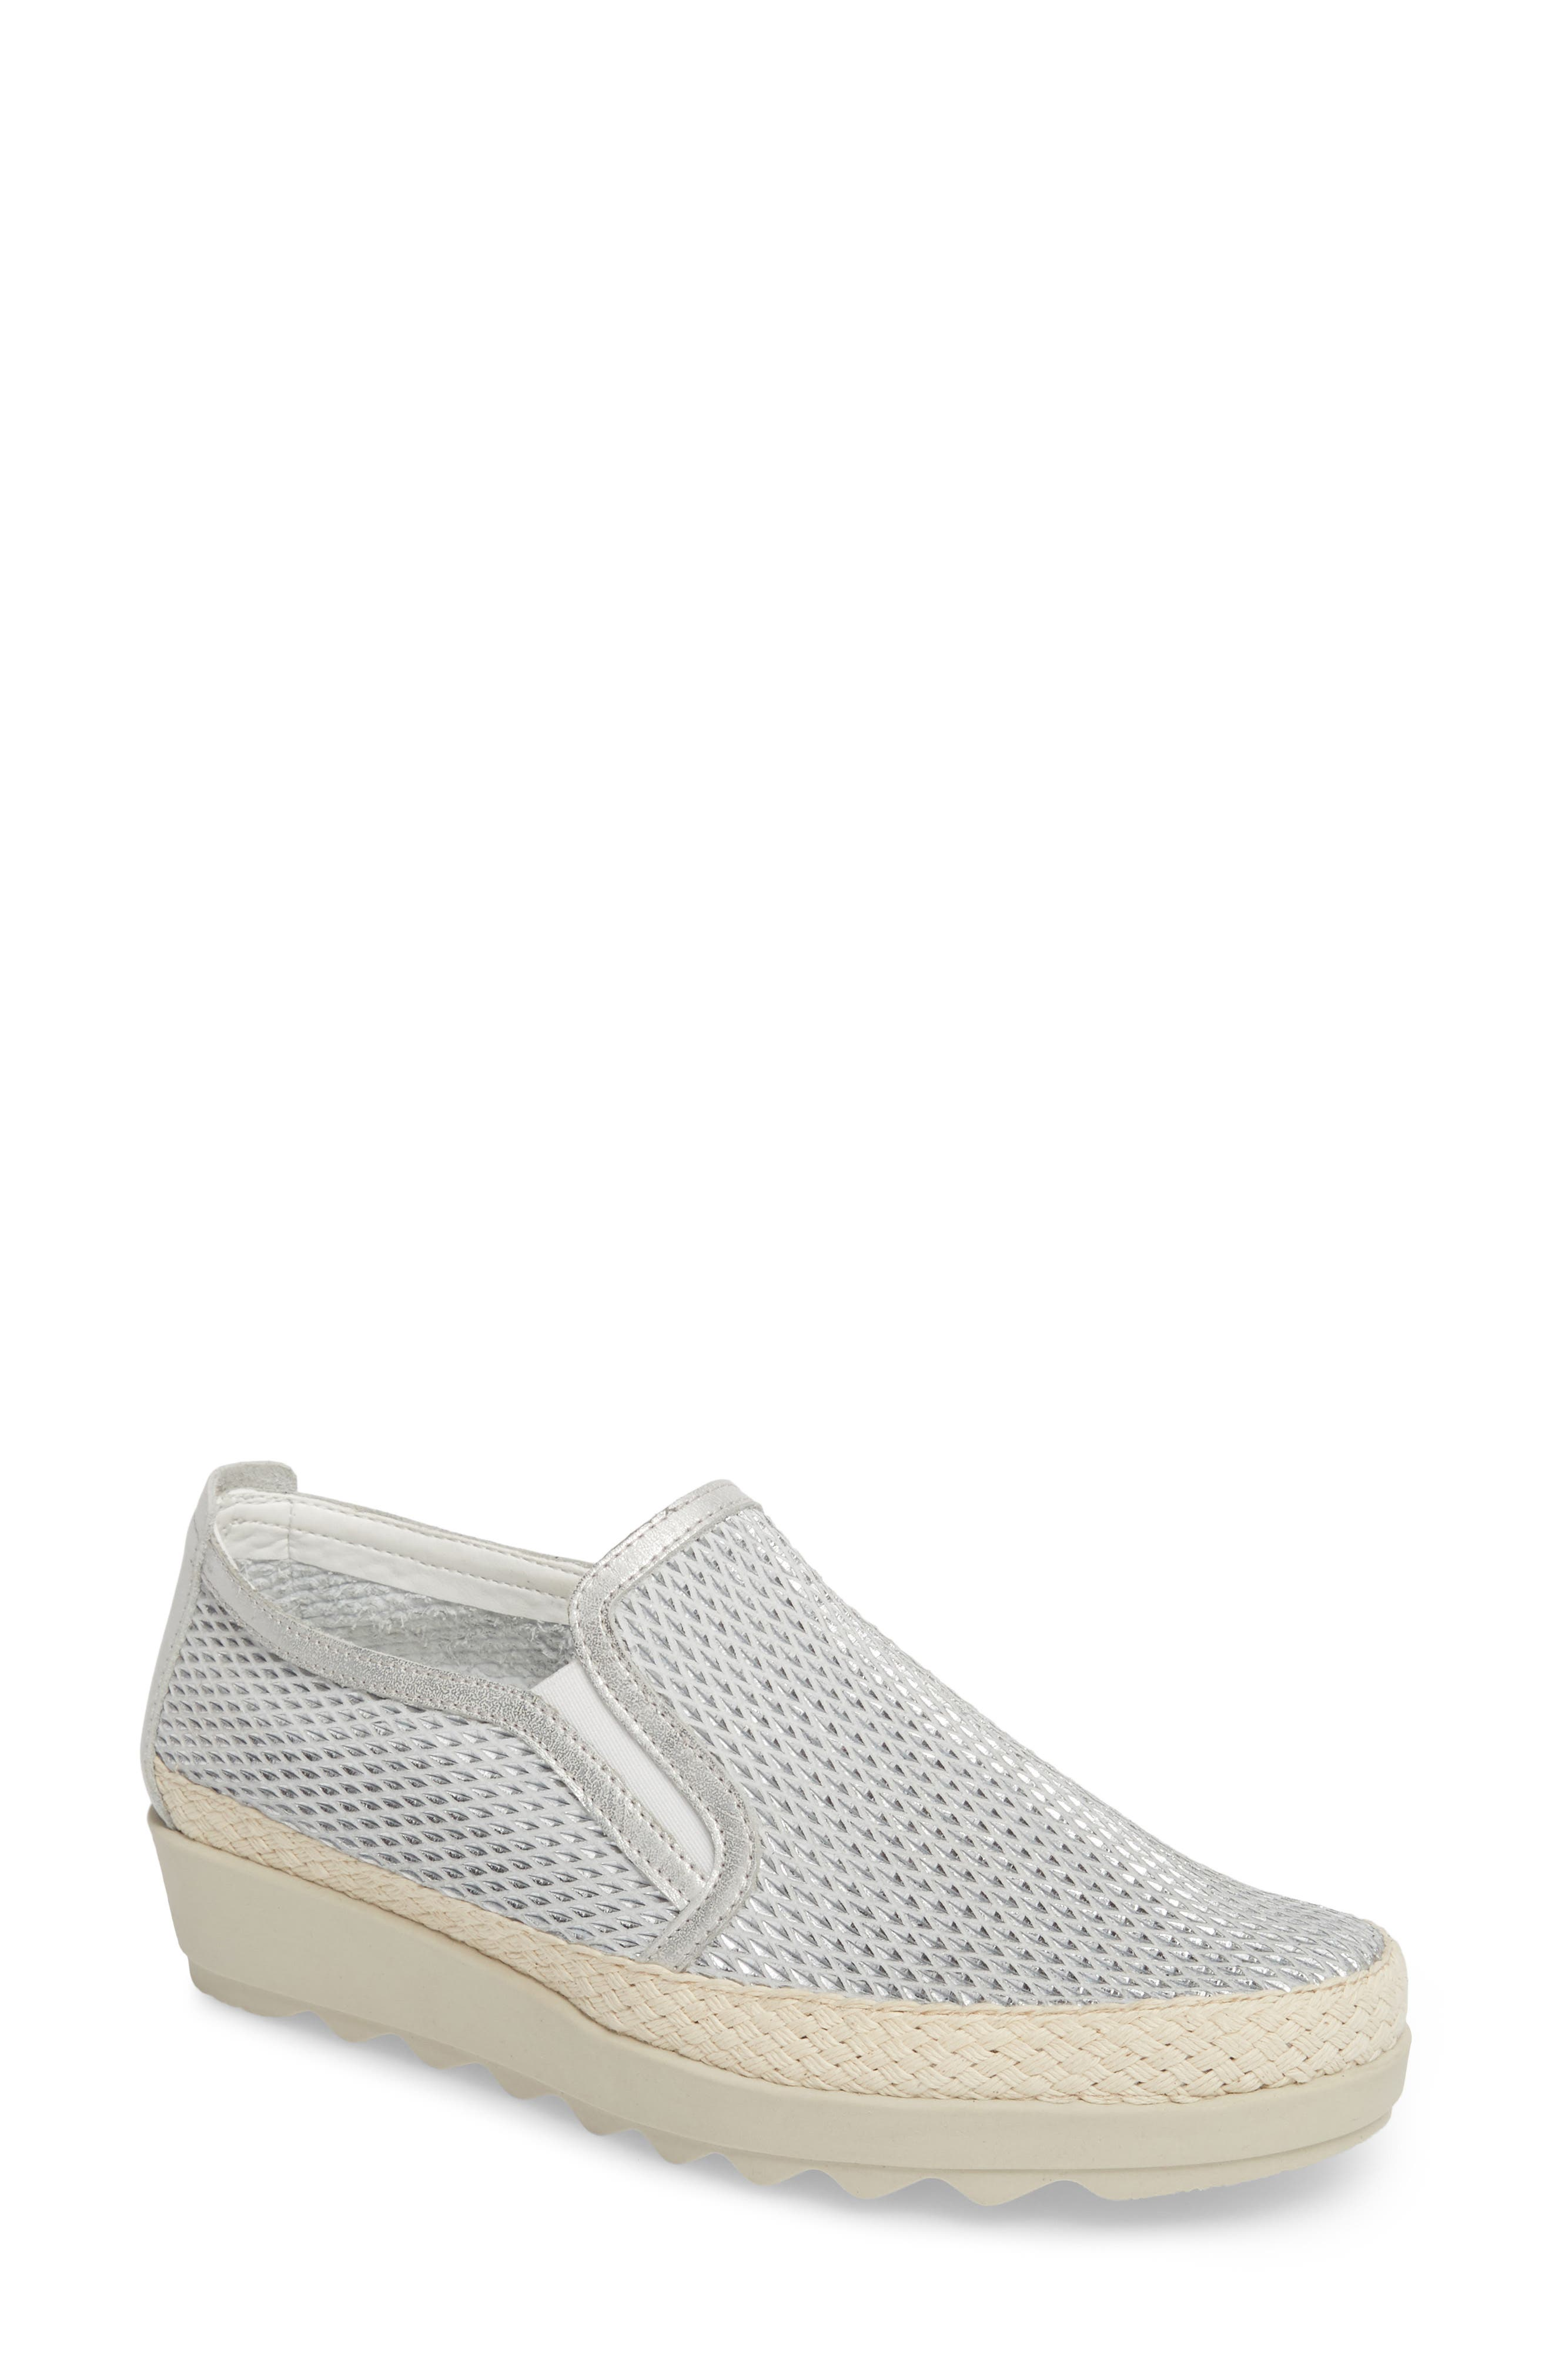 THE FLEXX Call Me Perforated Slip-On Sneaker, Main, color, WHITE/ SILVER LEATHER